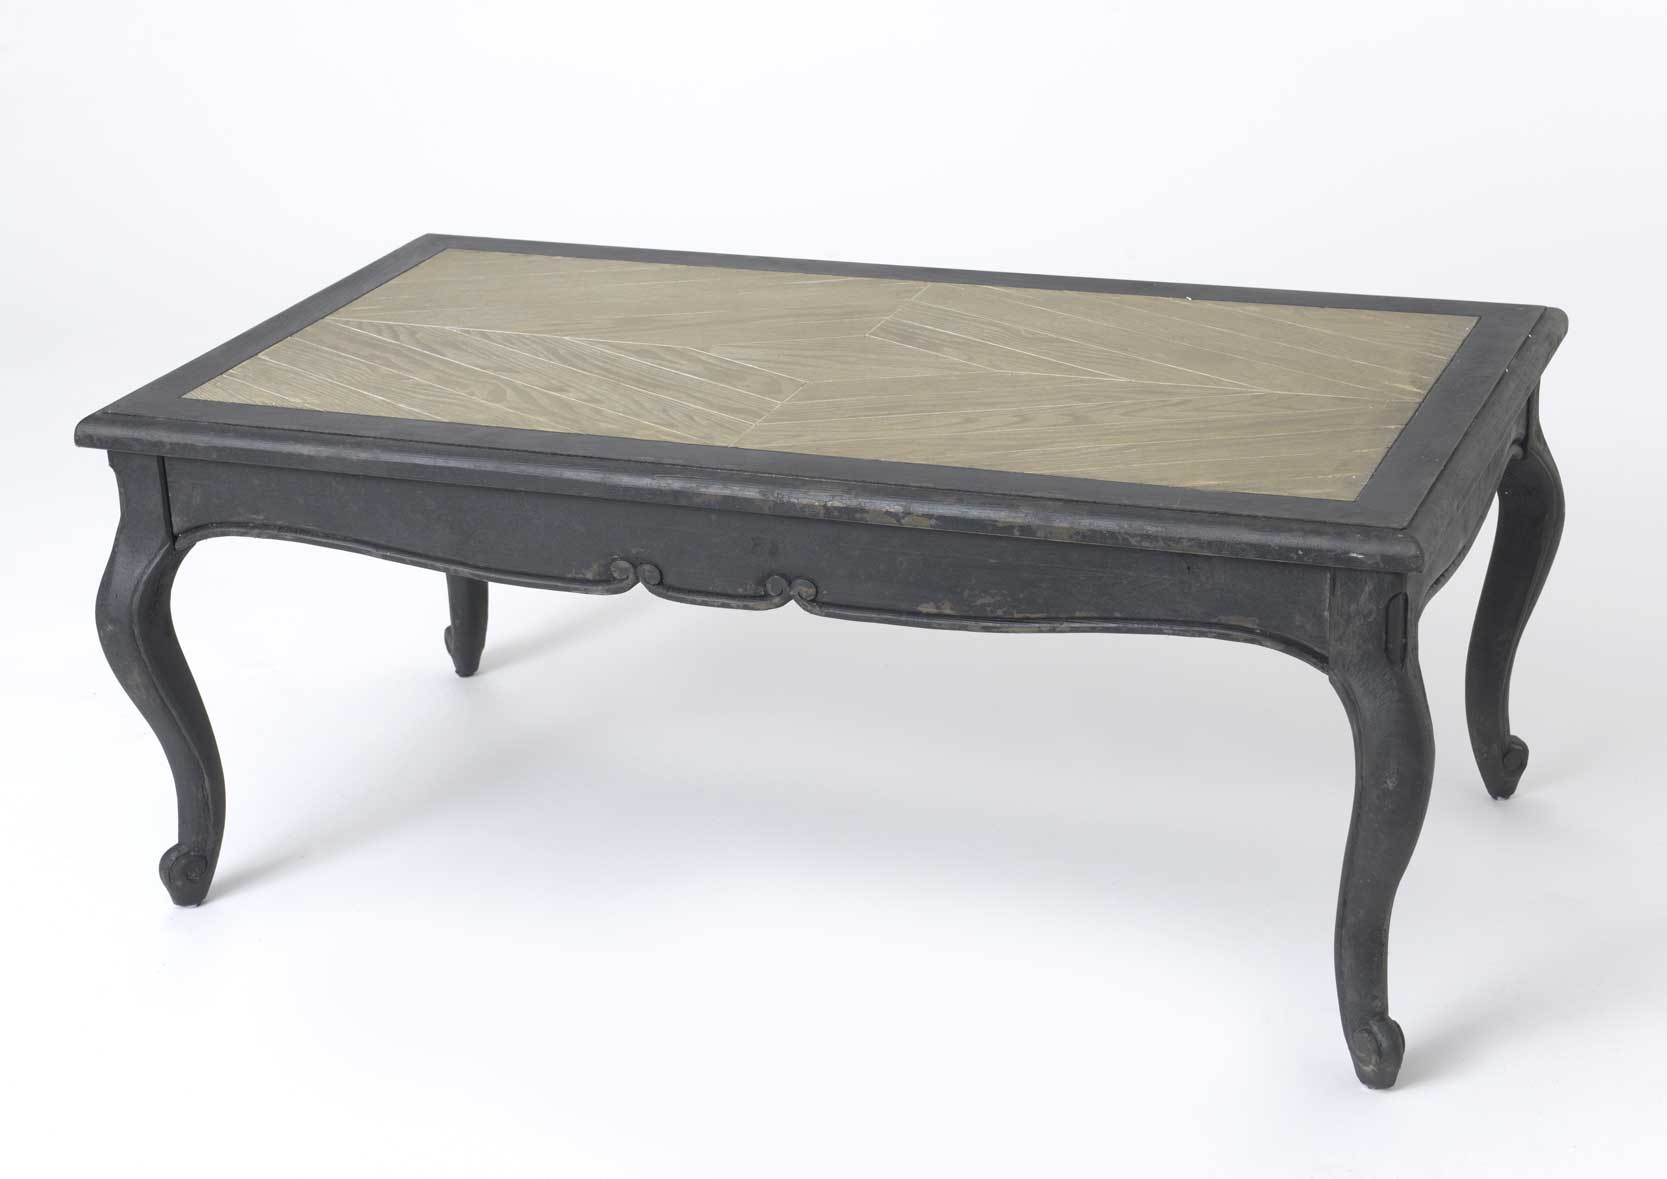 table basse plateau bois eur 524 00 picclick fr. Black Bedroom Furniture Sets. Home Design Ideas